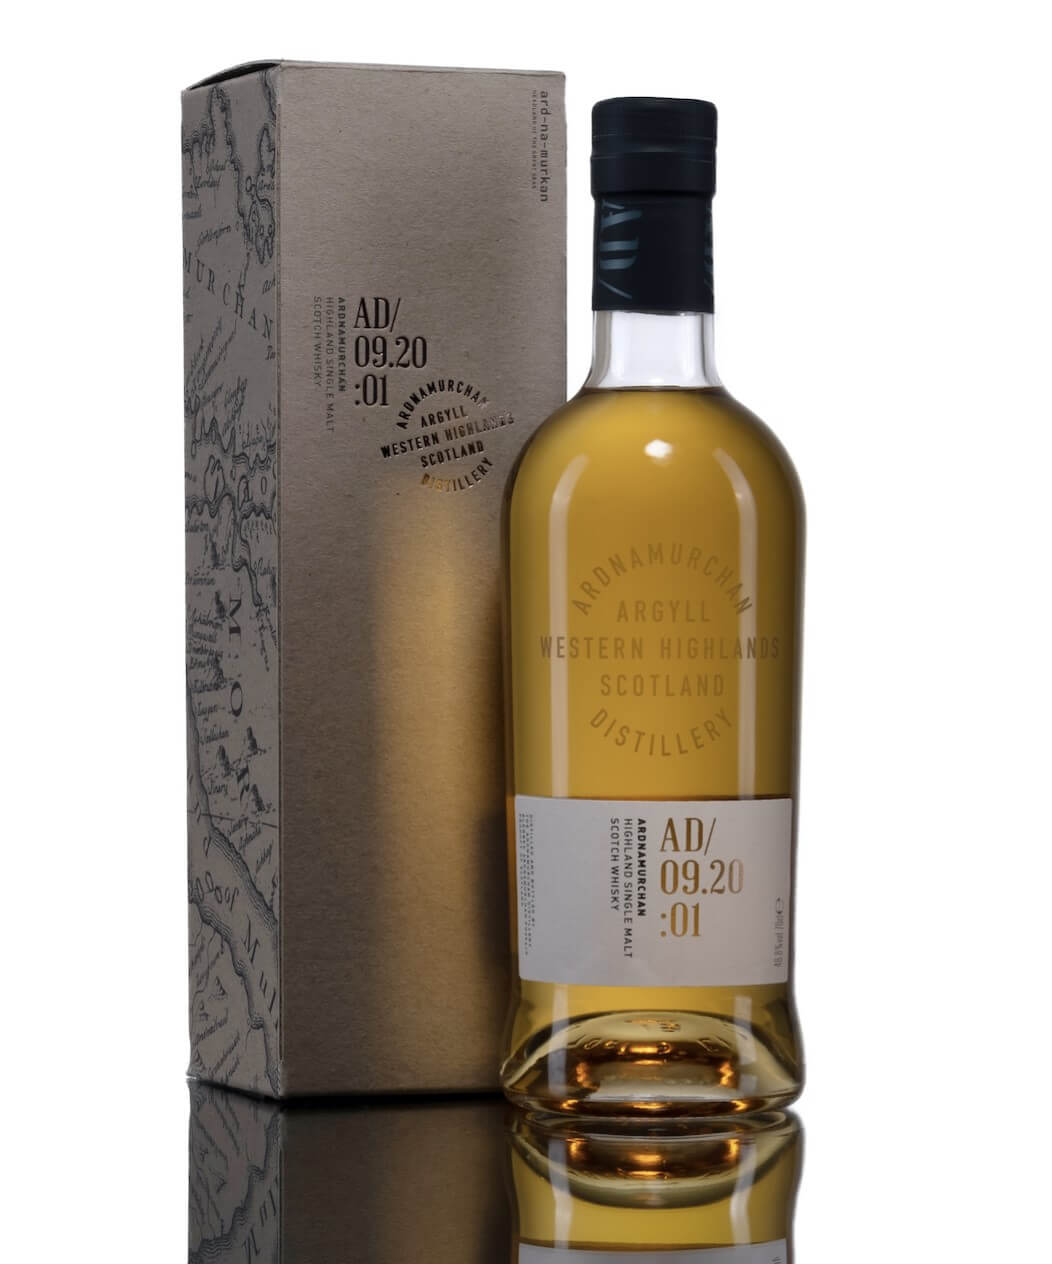 The inagural single malt Scotch whisky release from Ardnamurchan Distillery